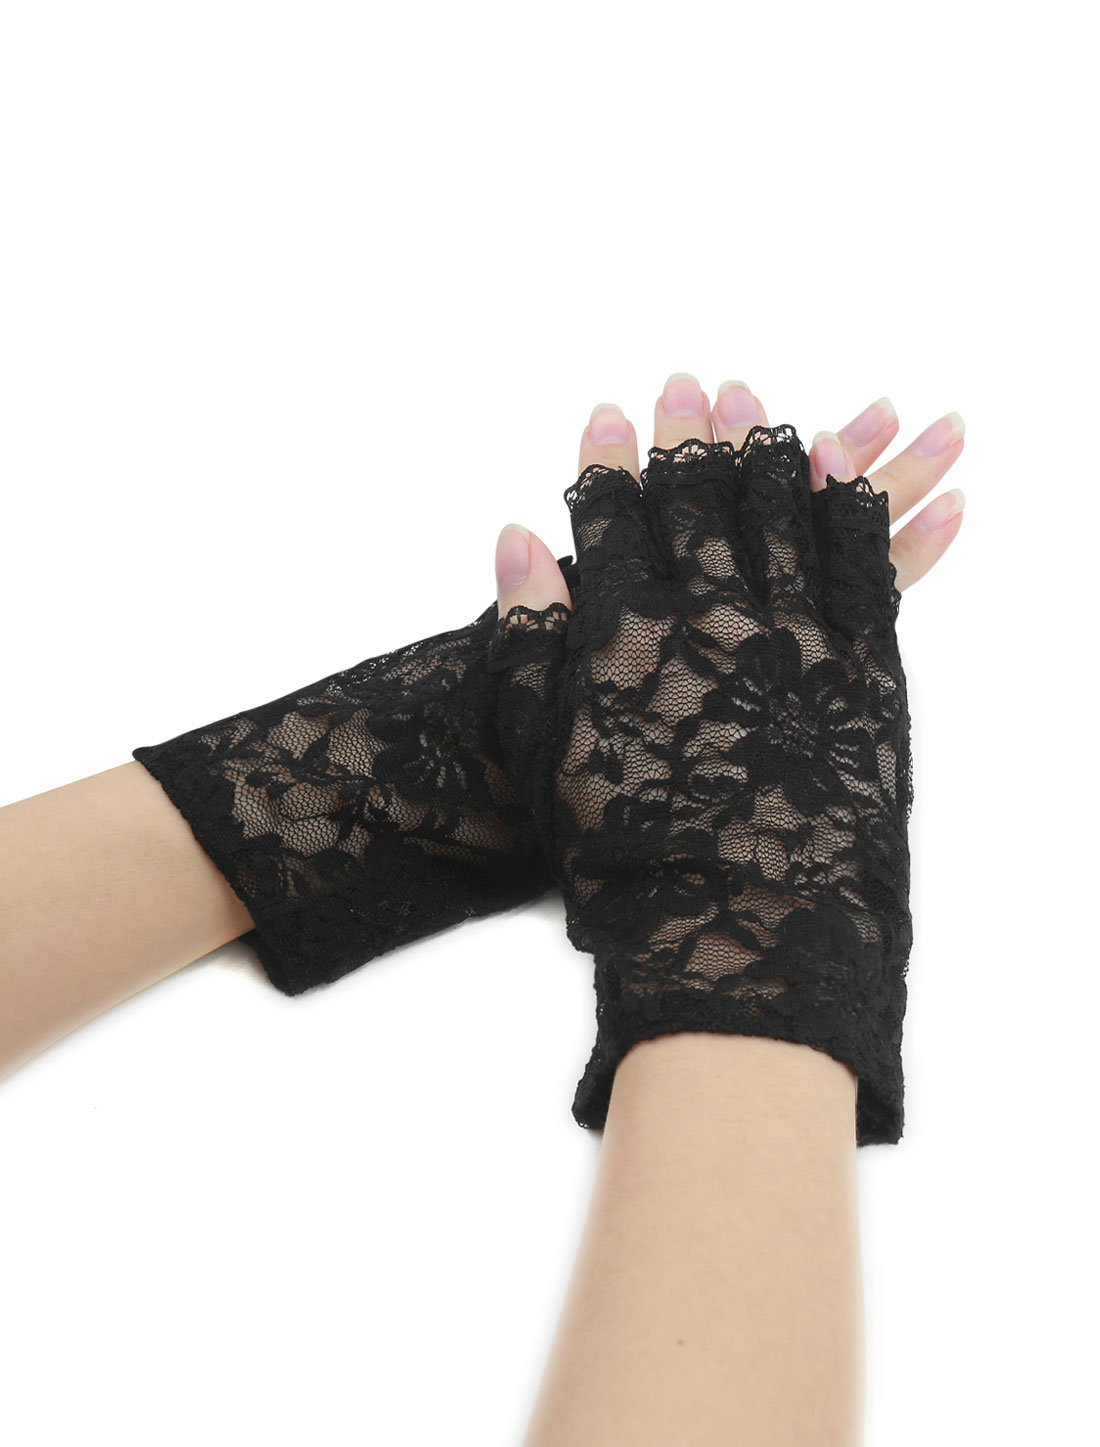 Women Wrist Length Half Finger Floral Lace Gloves Pair Black